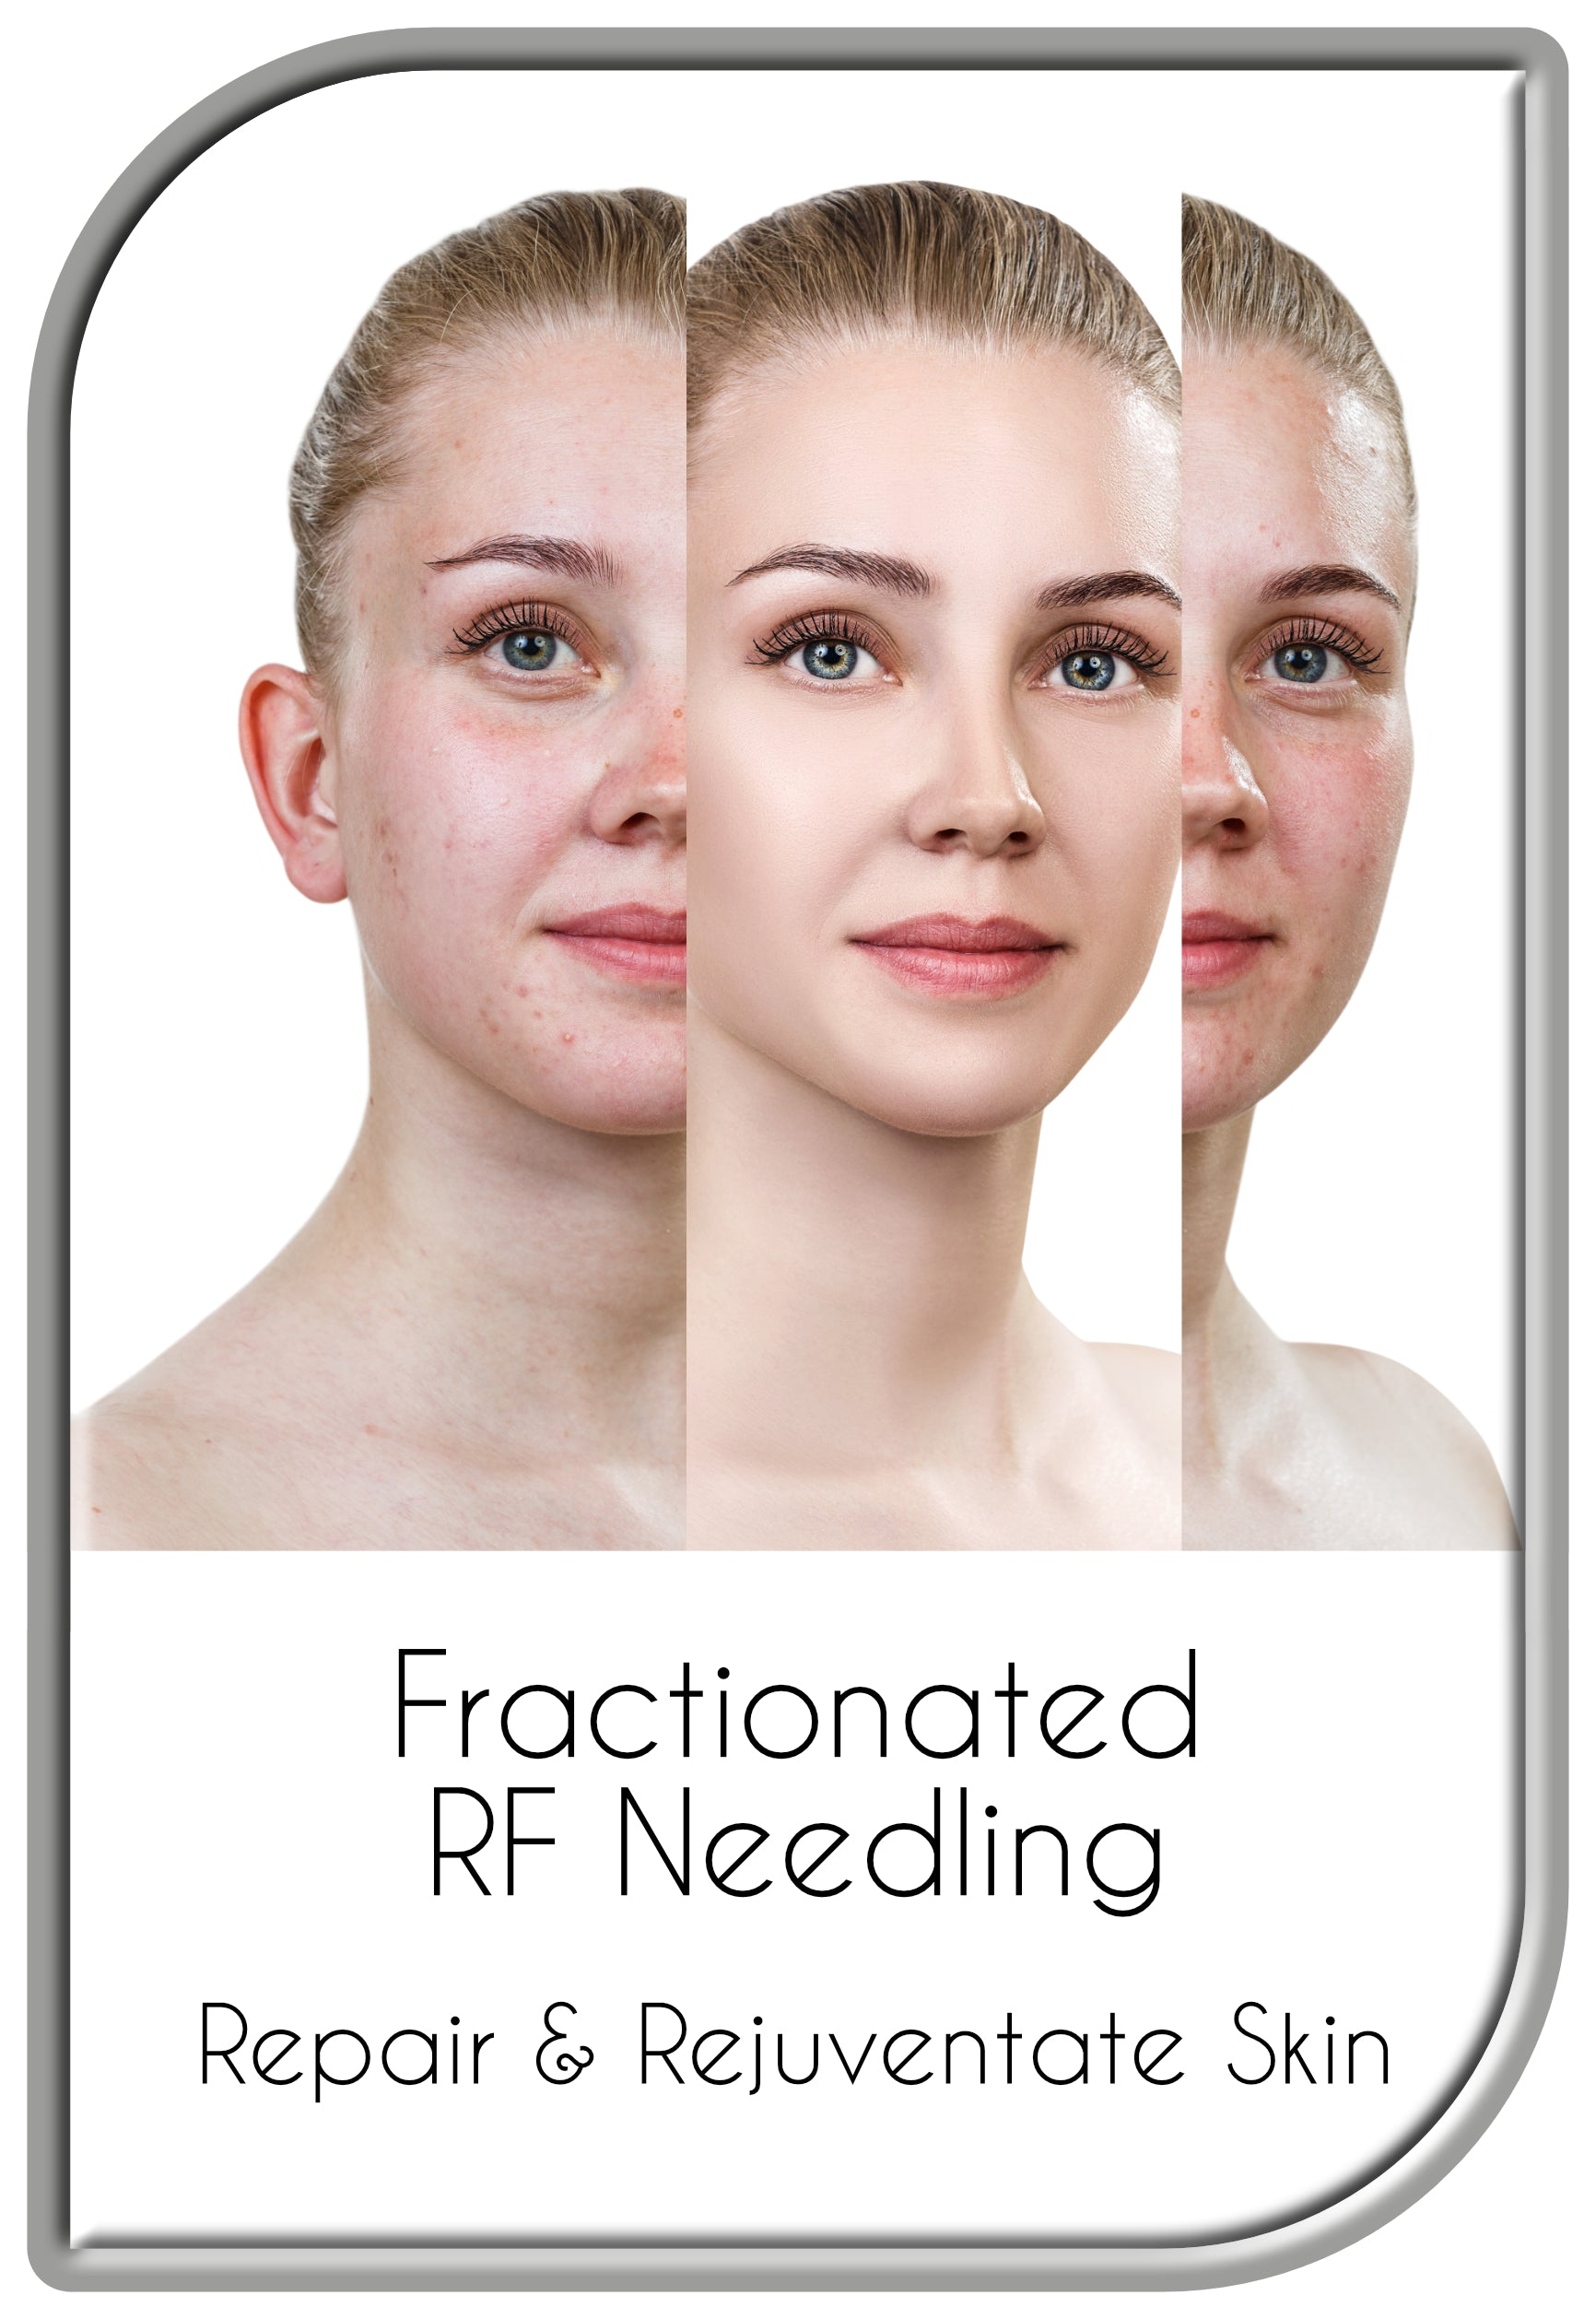 Fractionated RF Needling